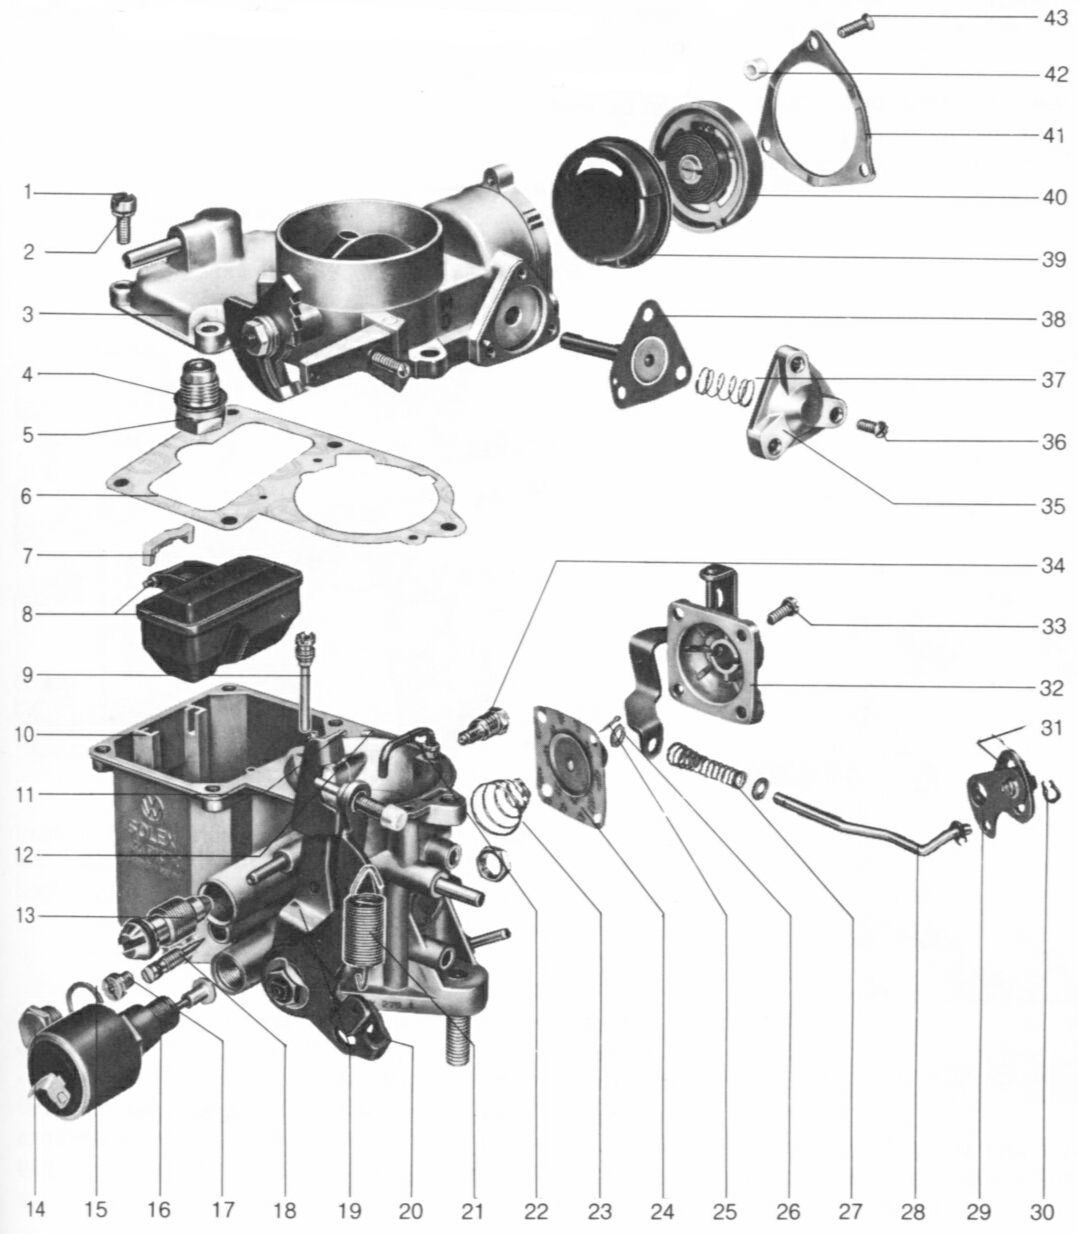 Spares1 furthermore Free Motorcycle Wiring Diagrams Yamaha V Star 1100 Motorcycle Download Free Printable Wiring moreover 1503220 besides Ford Ranger A4ld Automatic Transmission together with Automatic Transmission Rebuild Tools. on type 4 engine rebuild kit